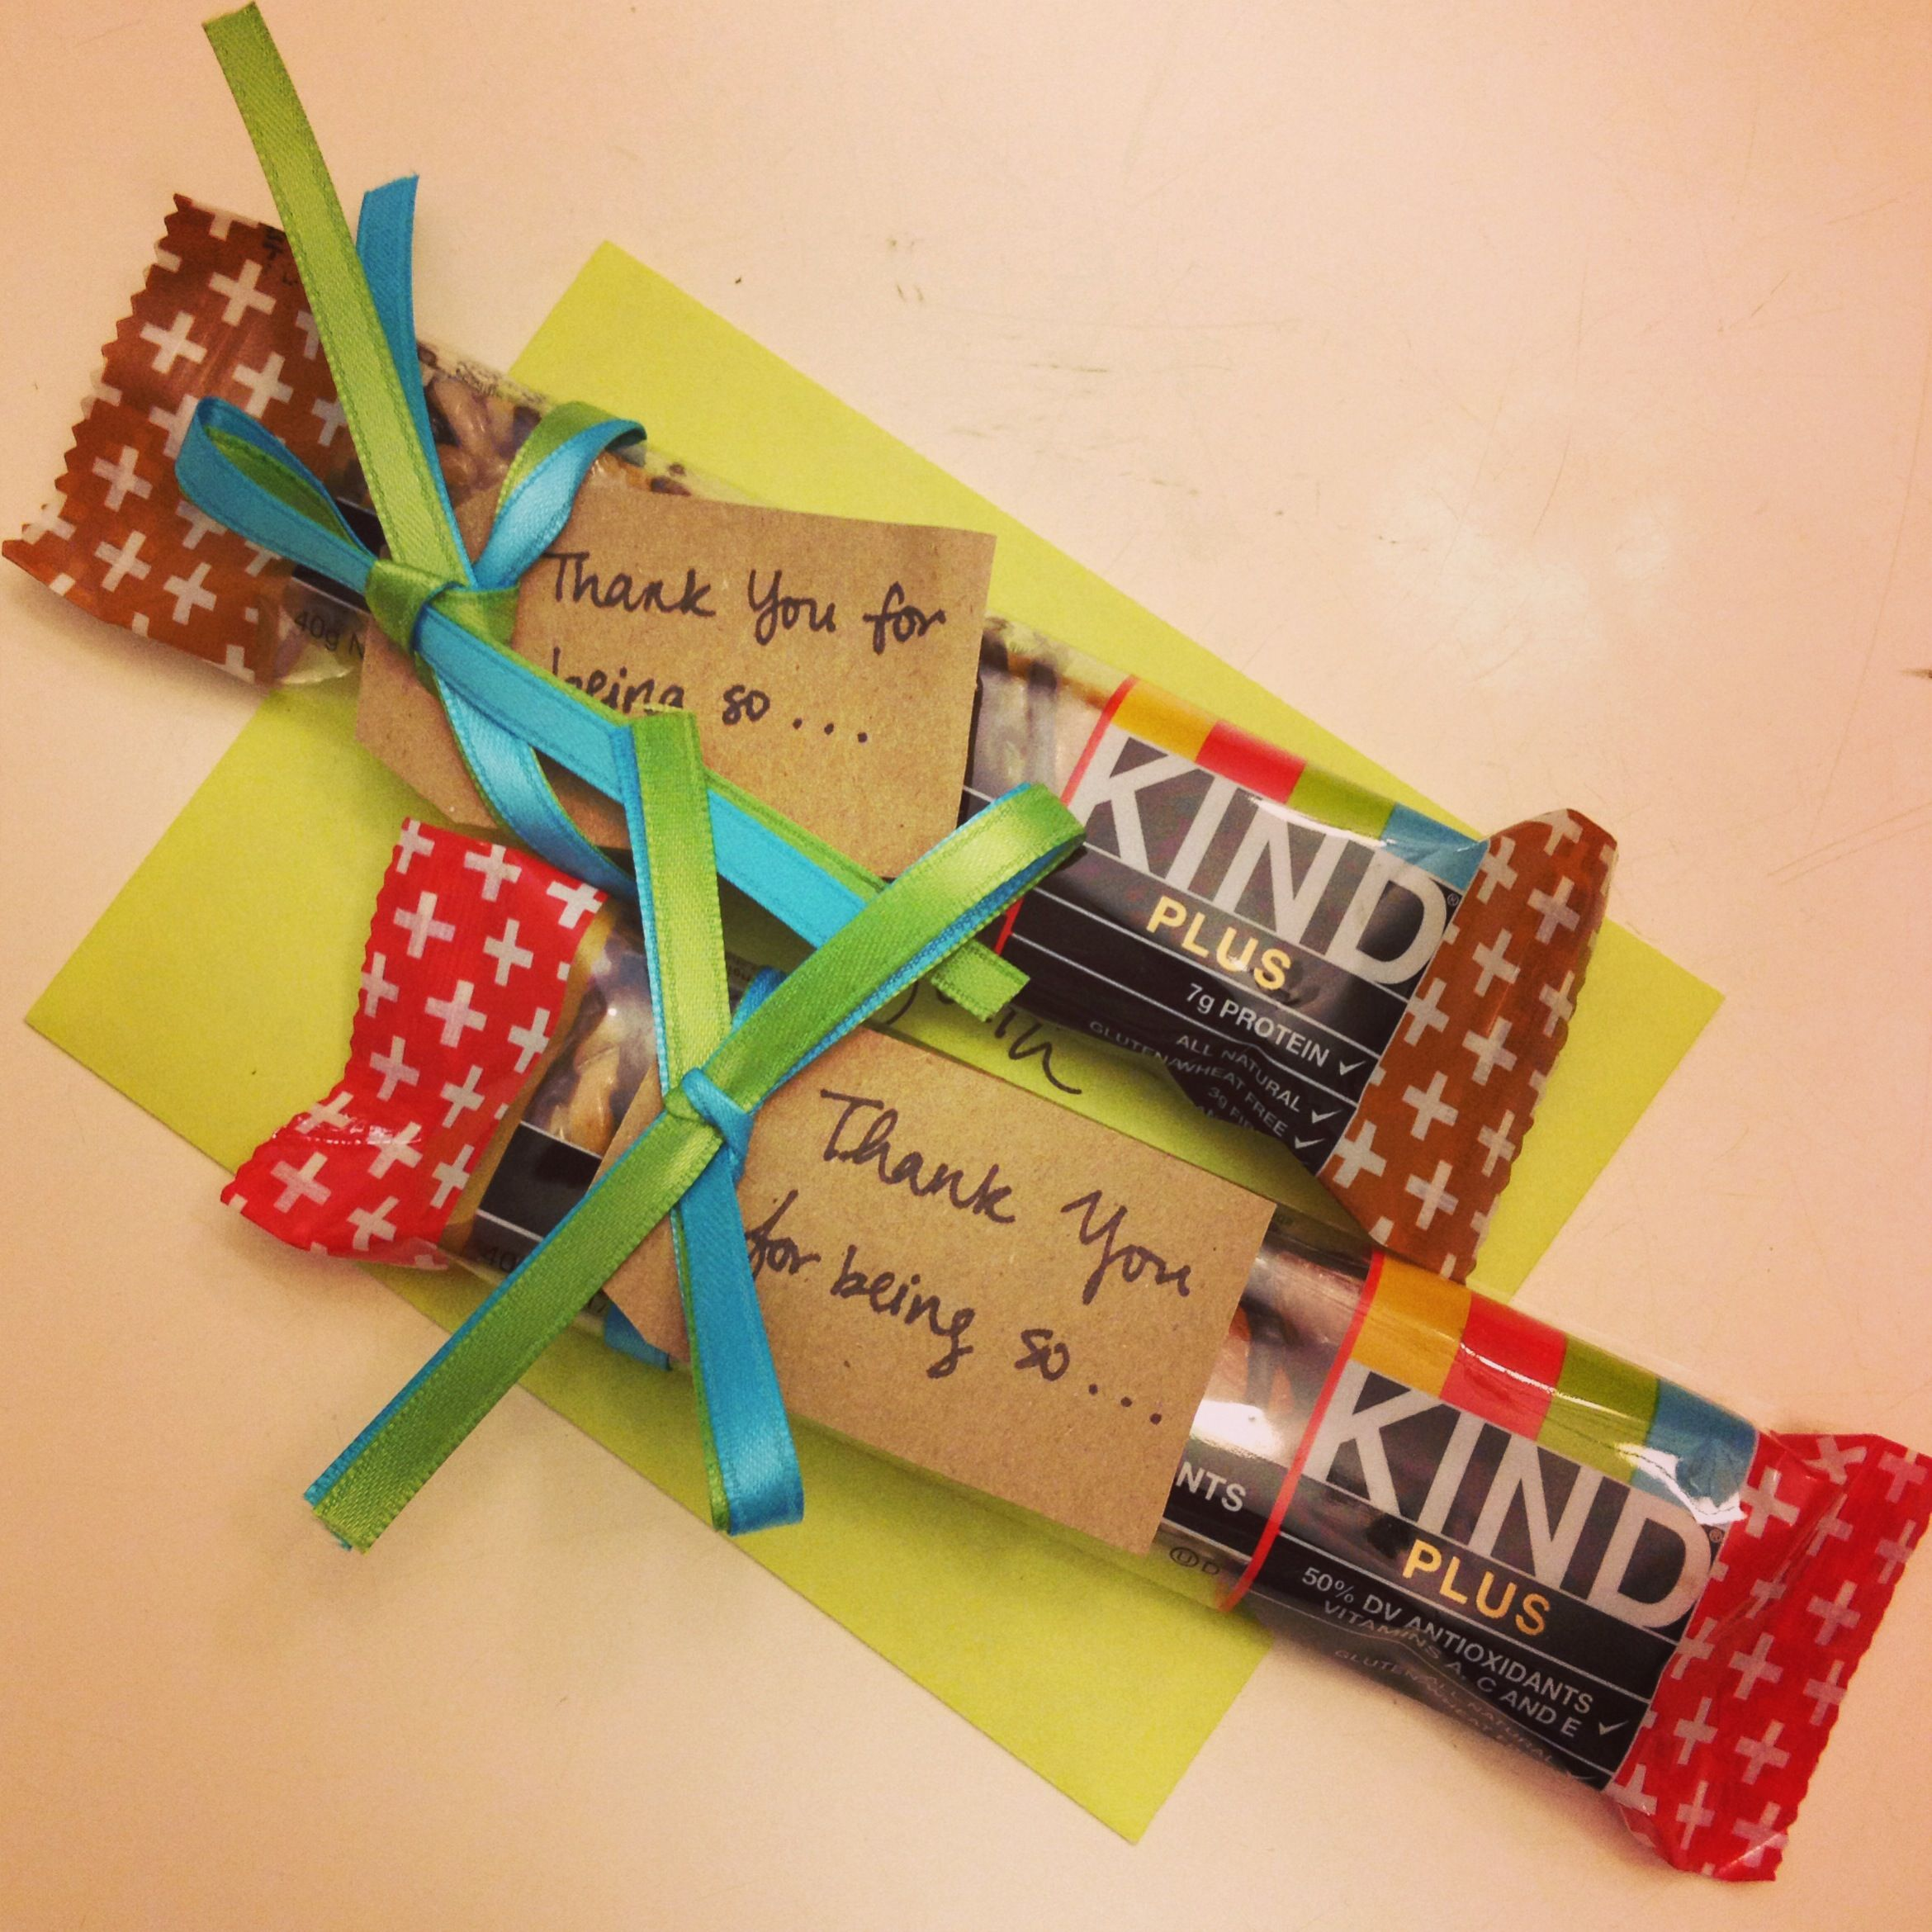 Cute Thank You Gift Idea Using Kind Bars Staff Gifts Employee